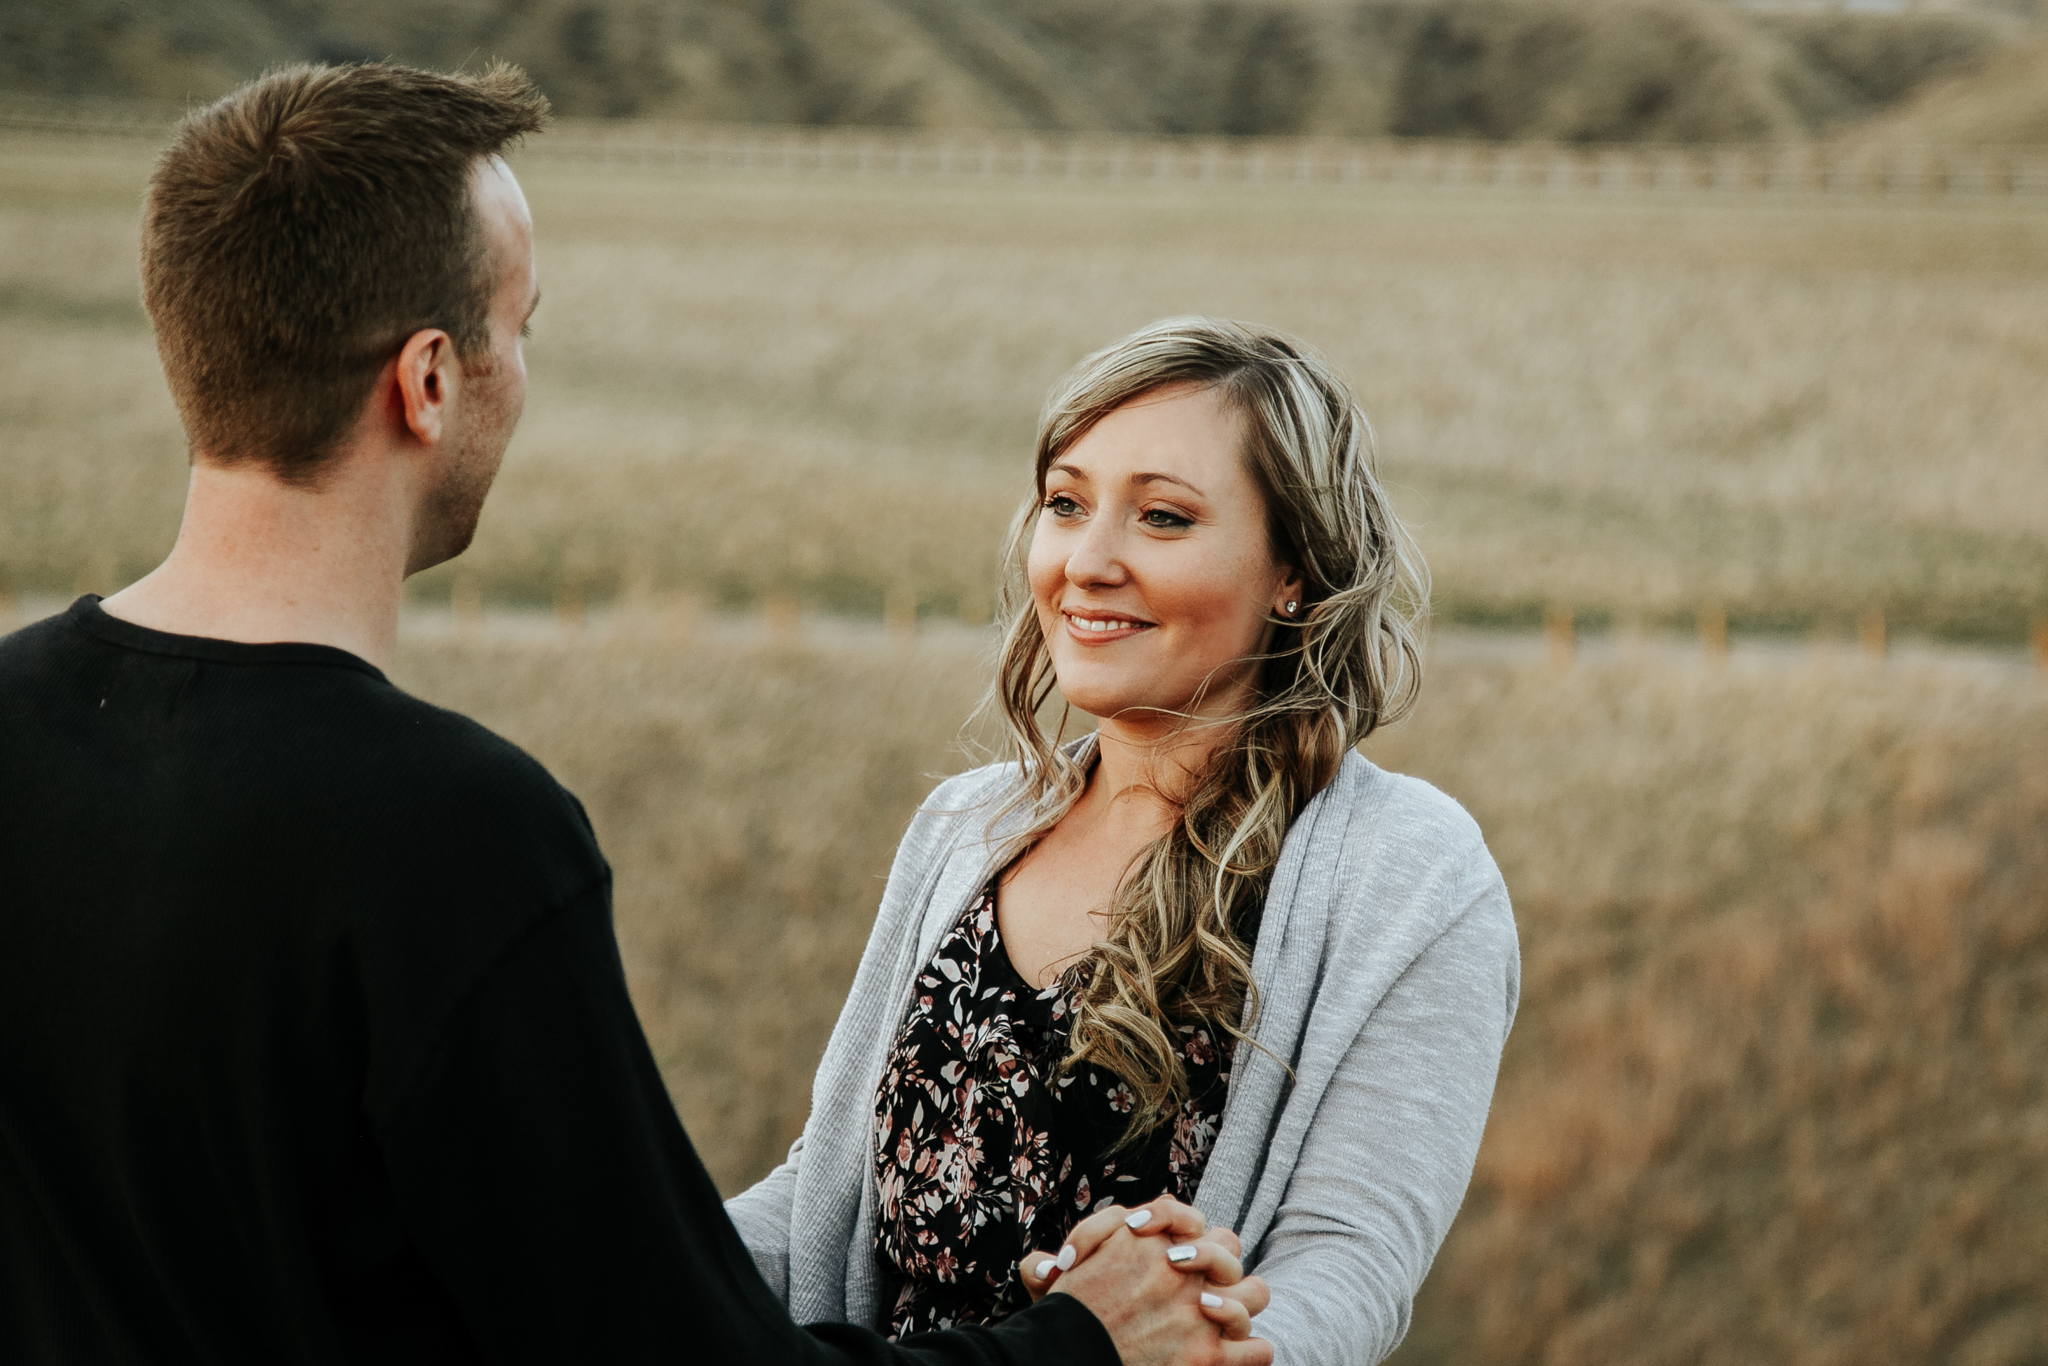 lethbridge-photographer-love-and-be-loved-photography-jessica-john-engagement-picture-image-photo-40.jpg